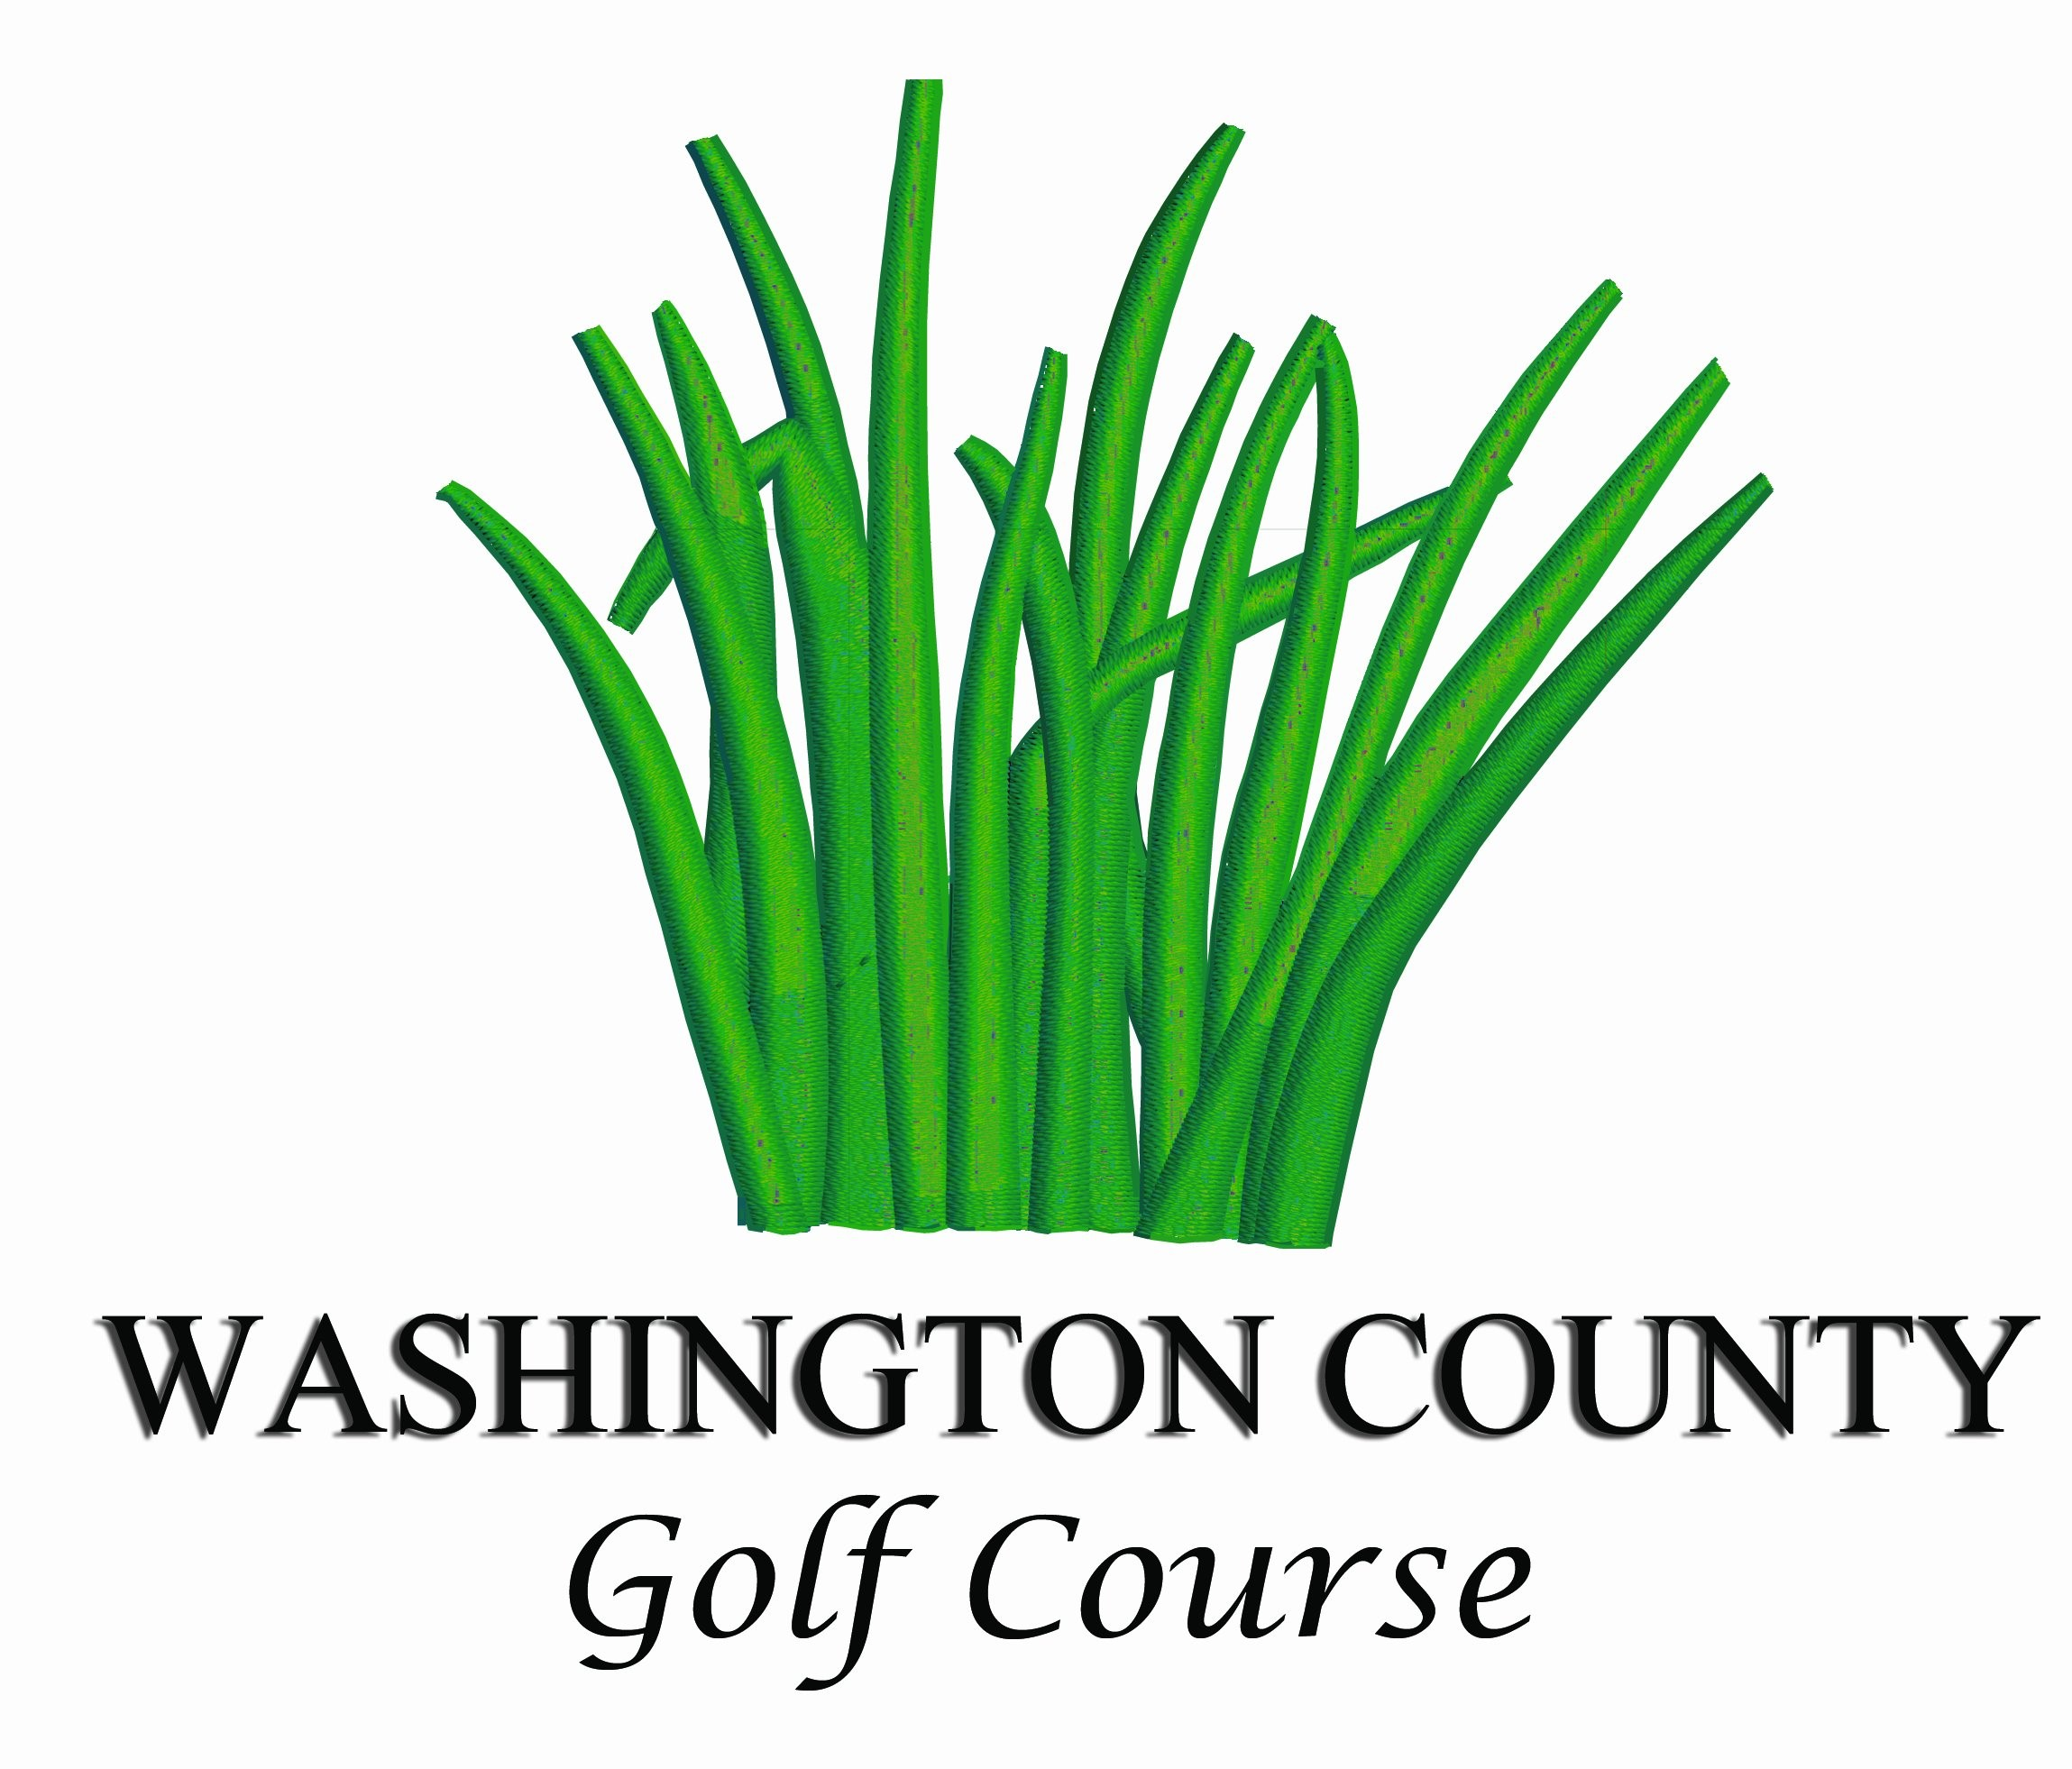 Wisconsin Golf Courses - Washington County